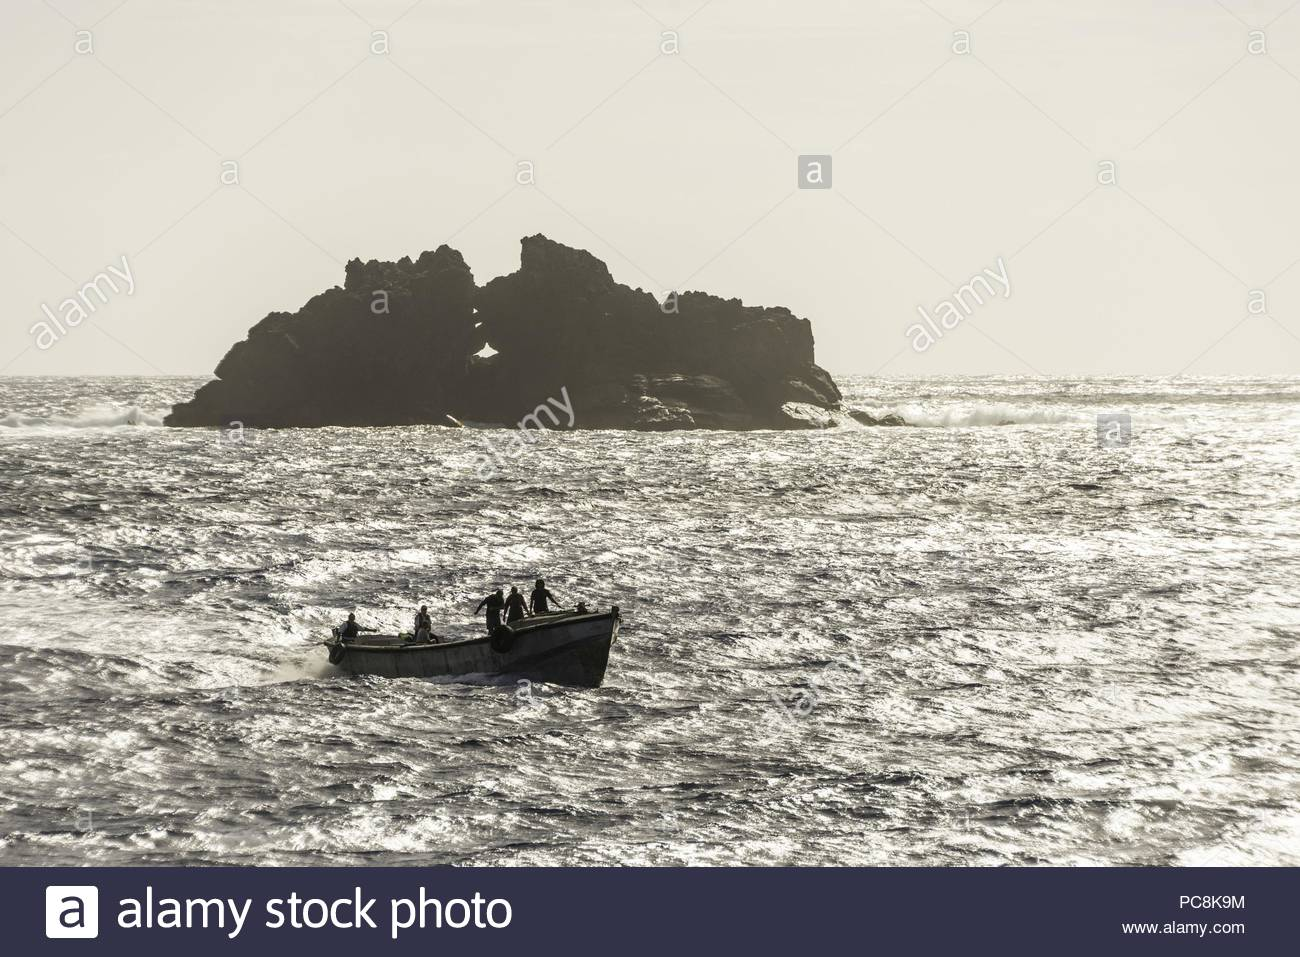 Island inhabitants use longboats to transport goods between the island and passing ships. - Stock Image